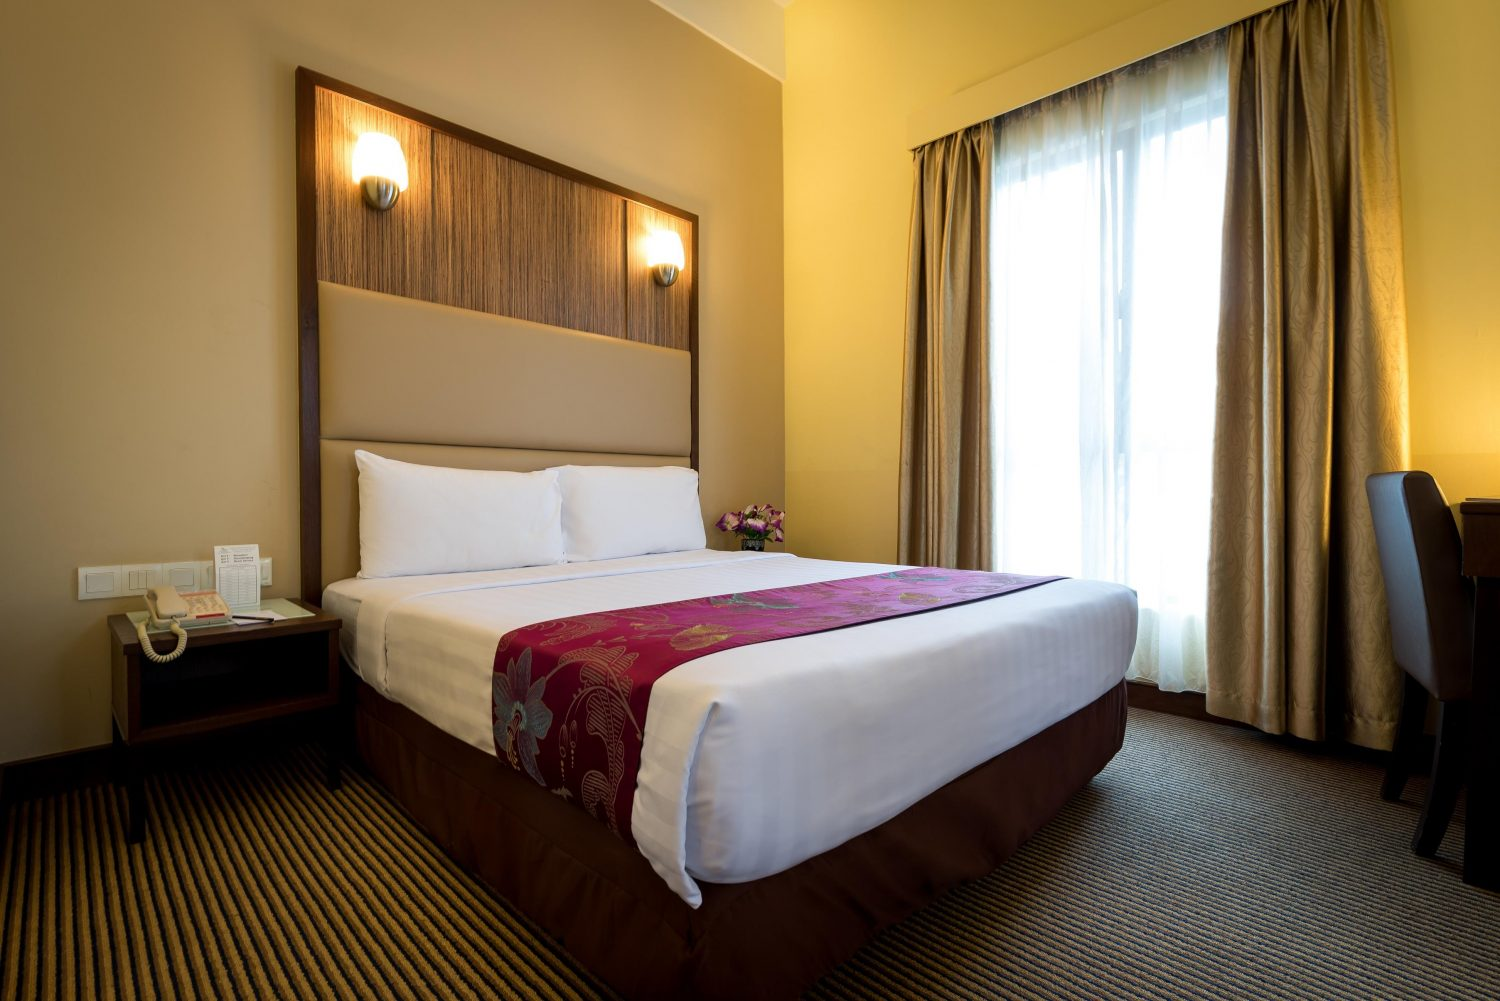 Hotel Sentral Kuala Lumpur Deluxe Room